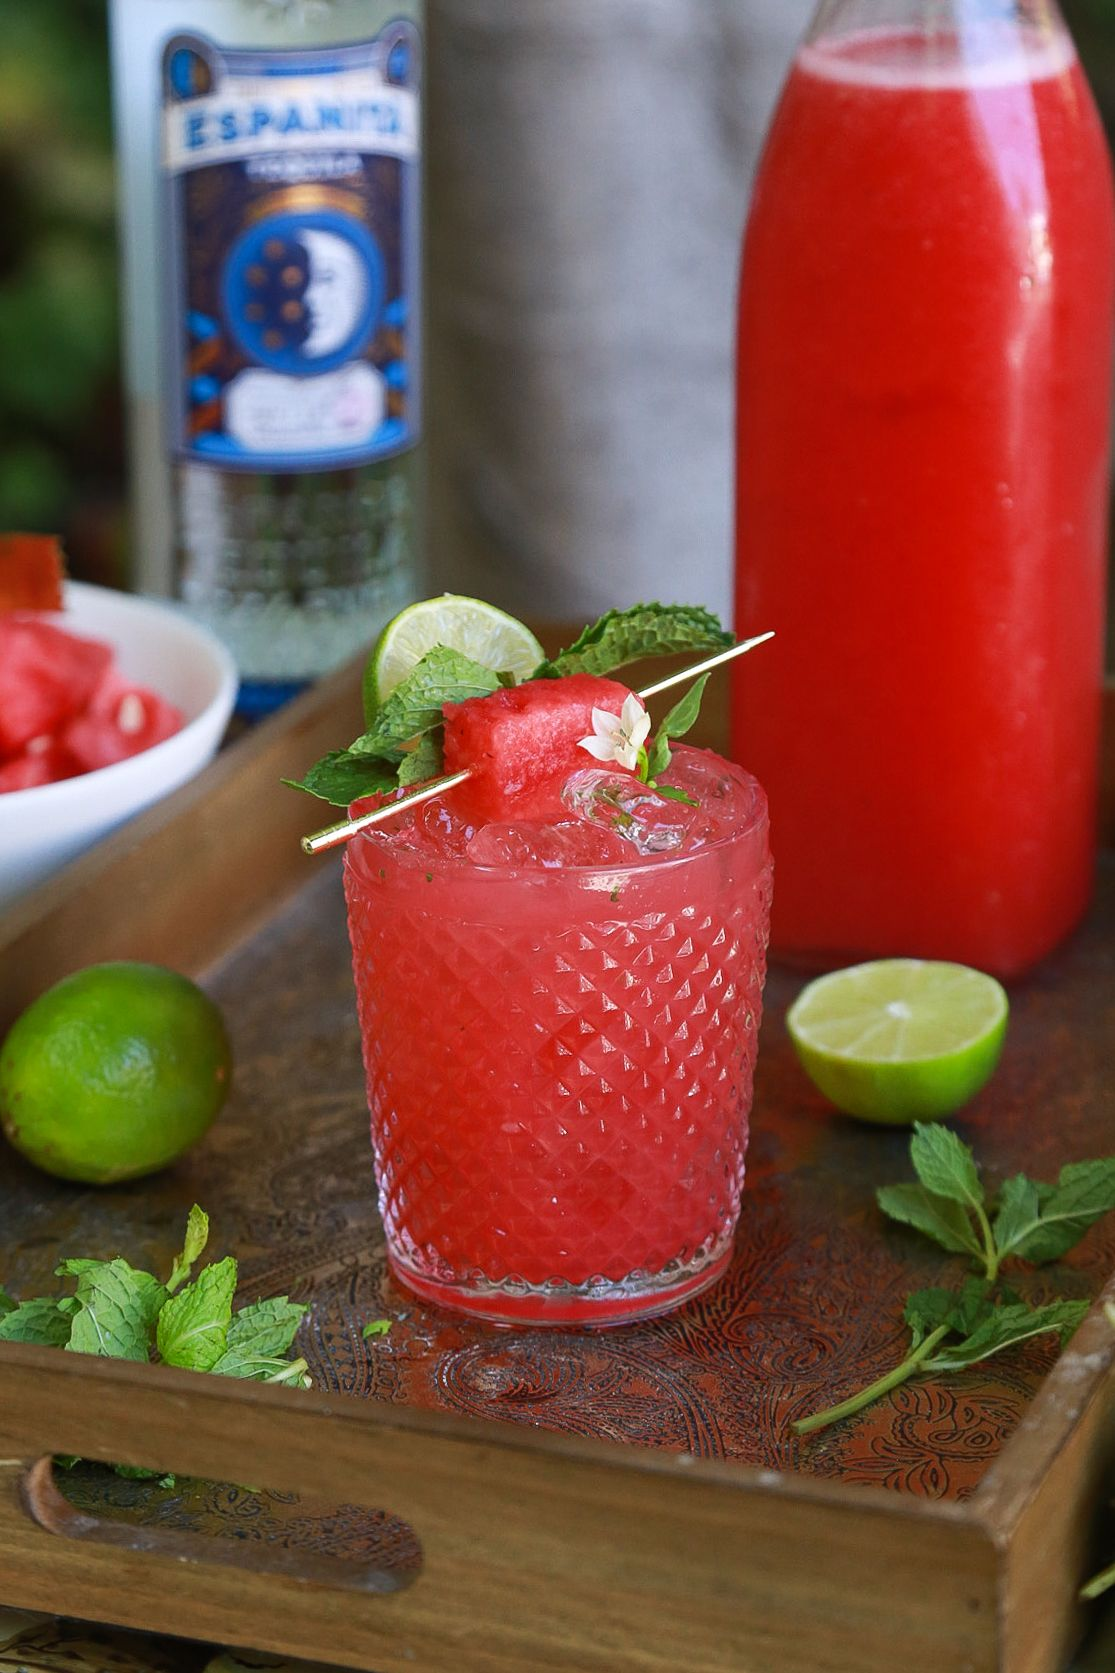 Watermelon Margarita In 2020 Watermelon Margarita Margarita Recipes Watermelon Juice